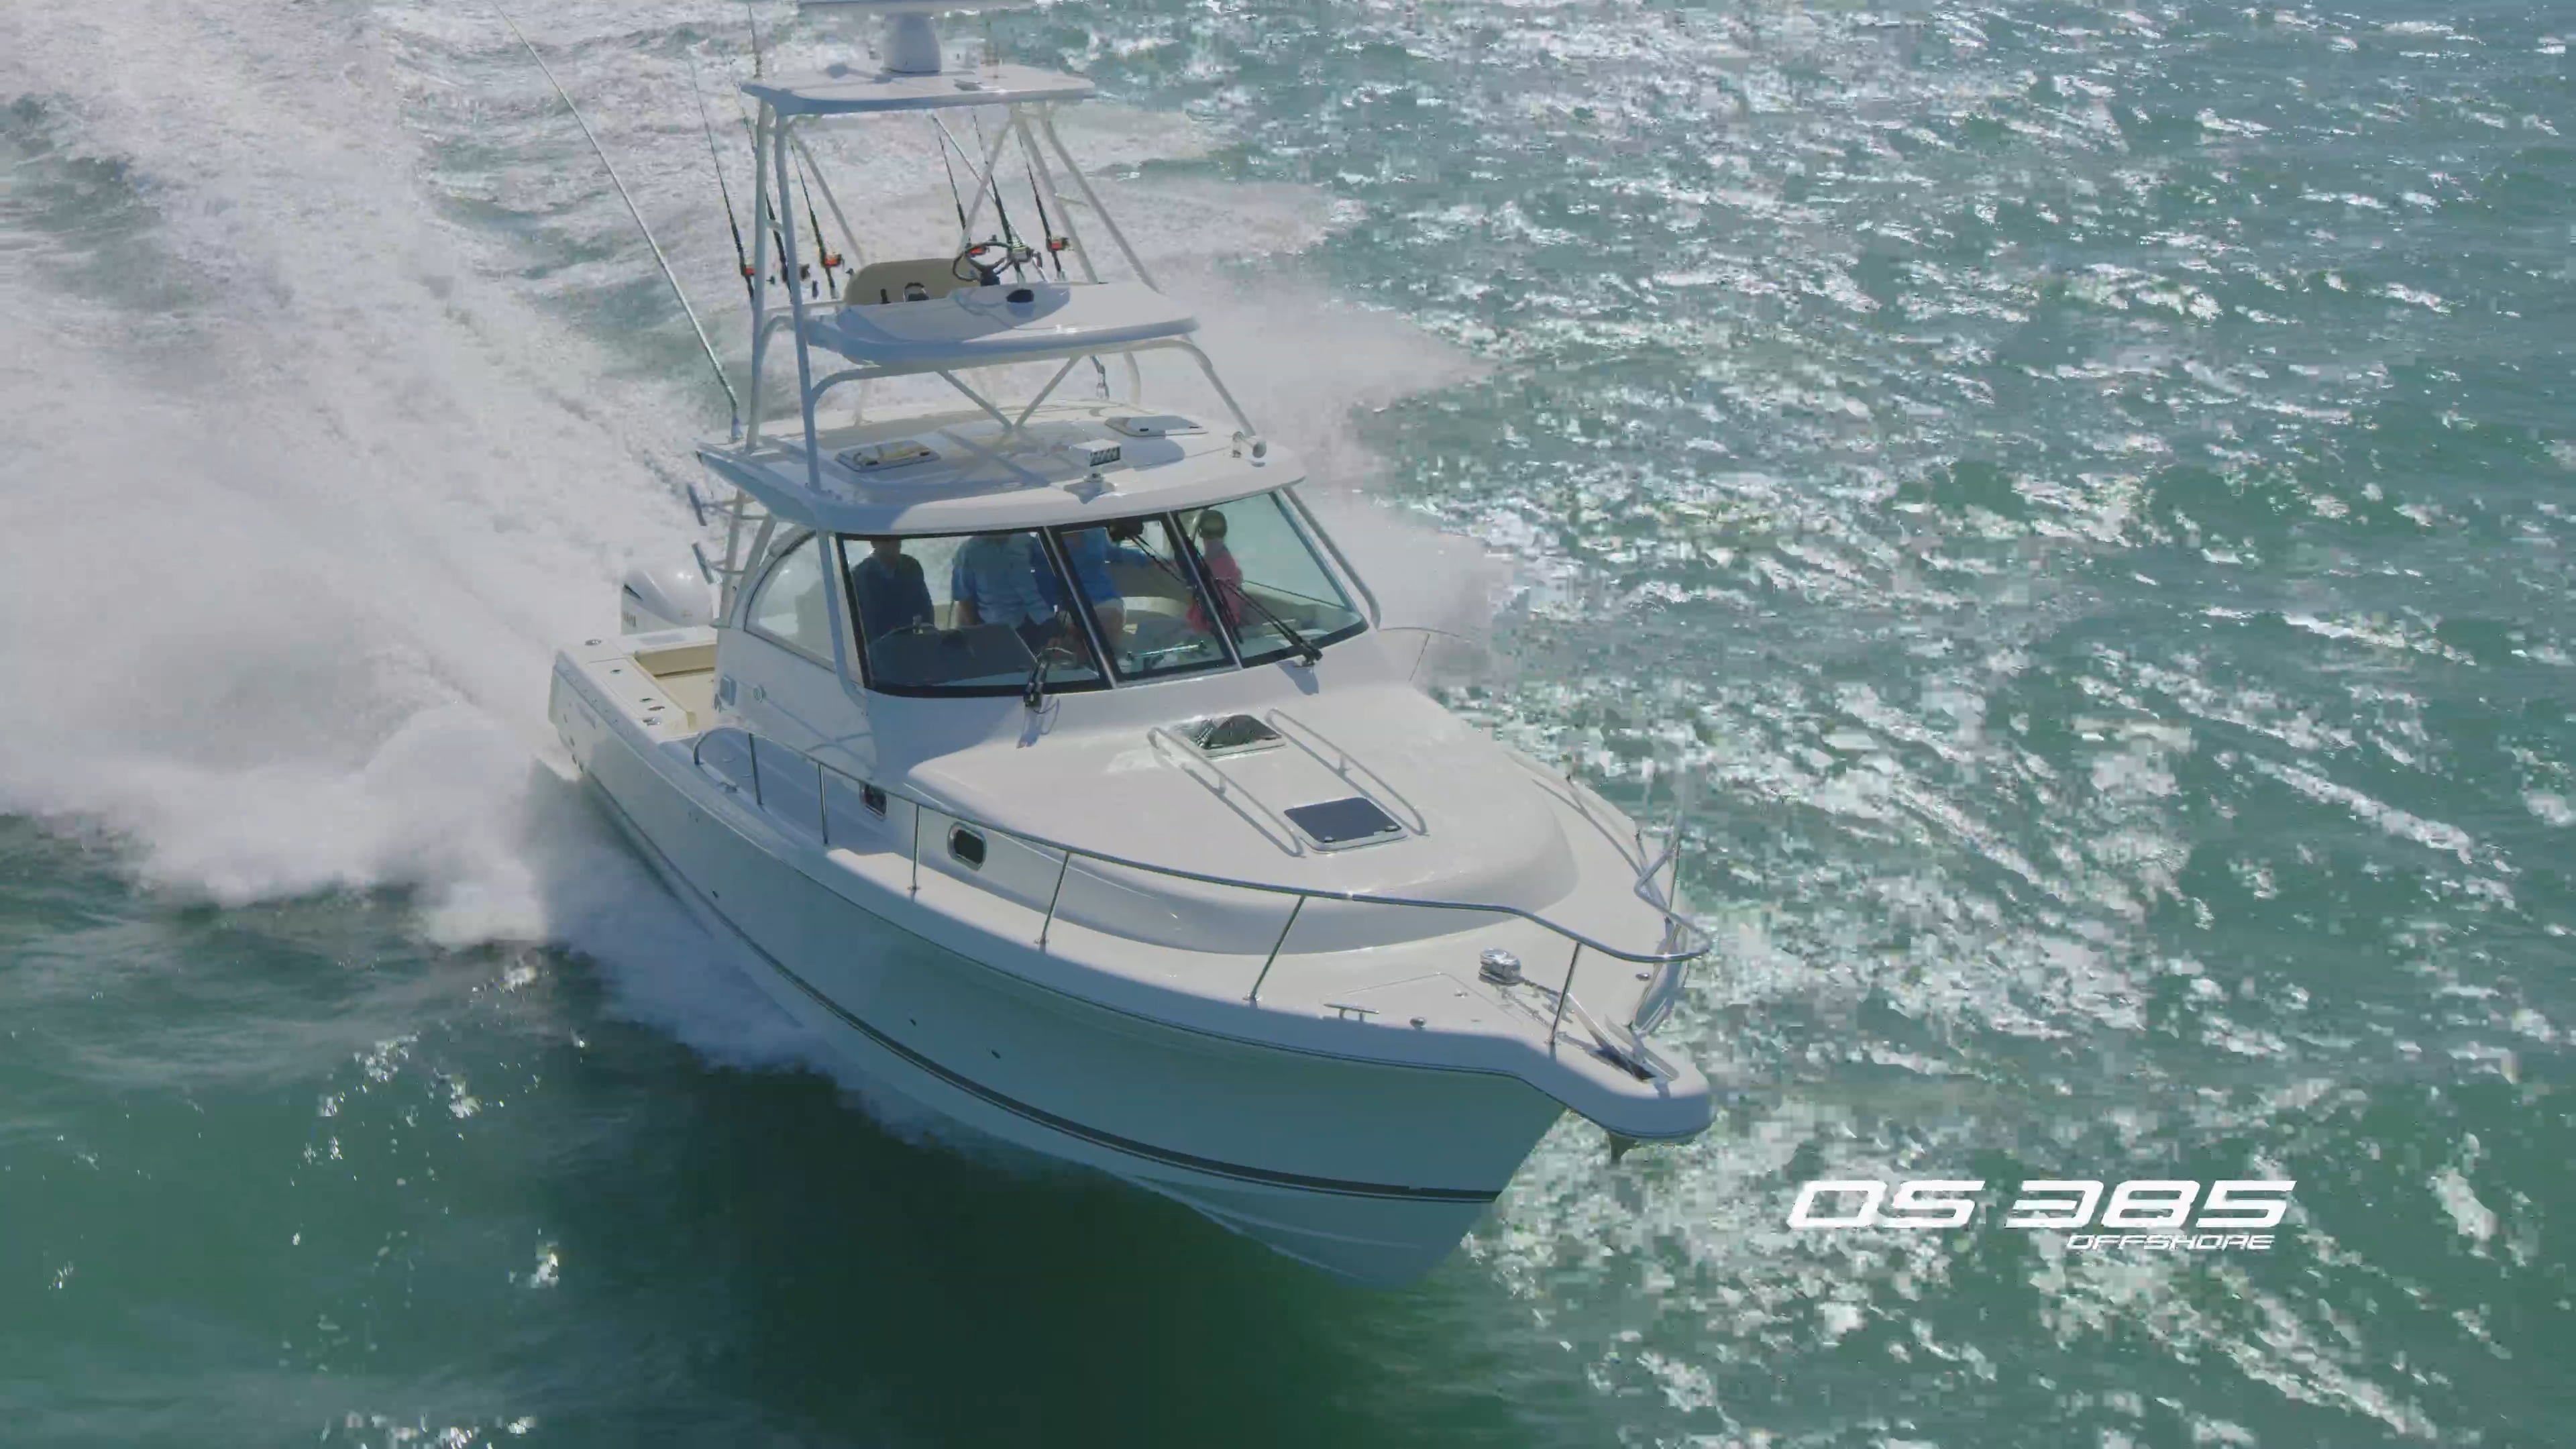 Pursuit Boats All New DC 326. Watch video now.